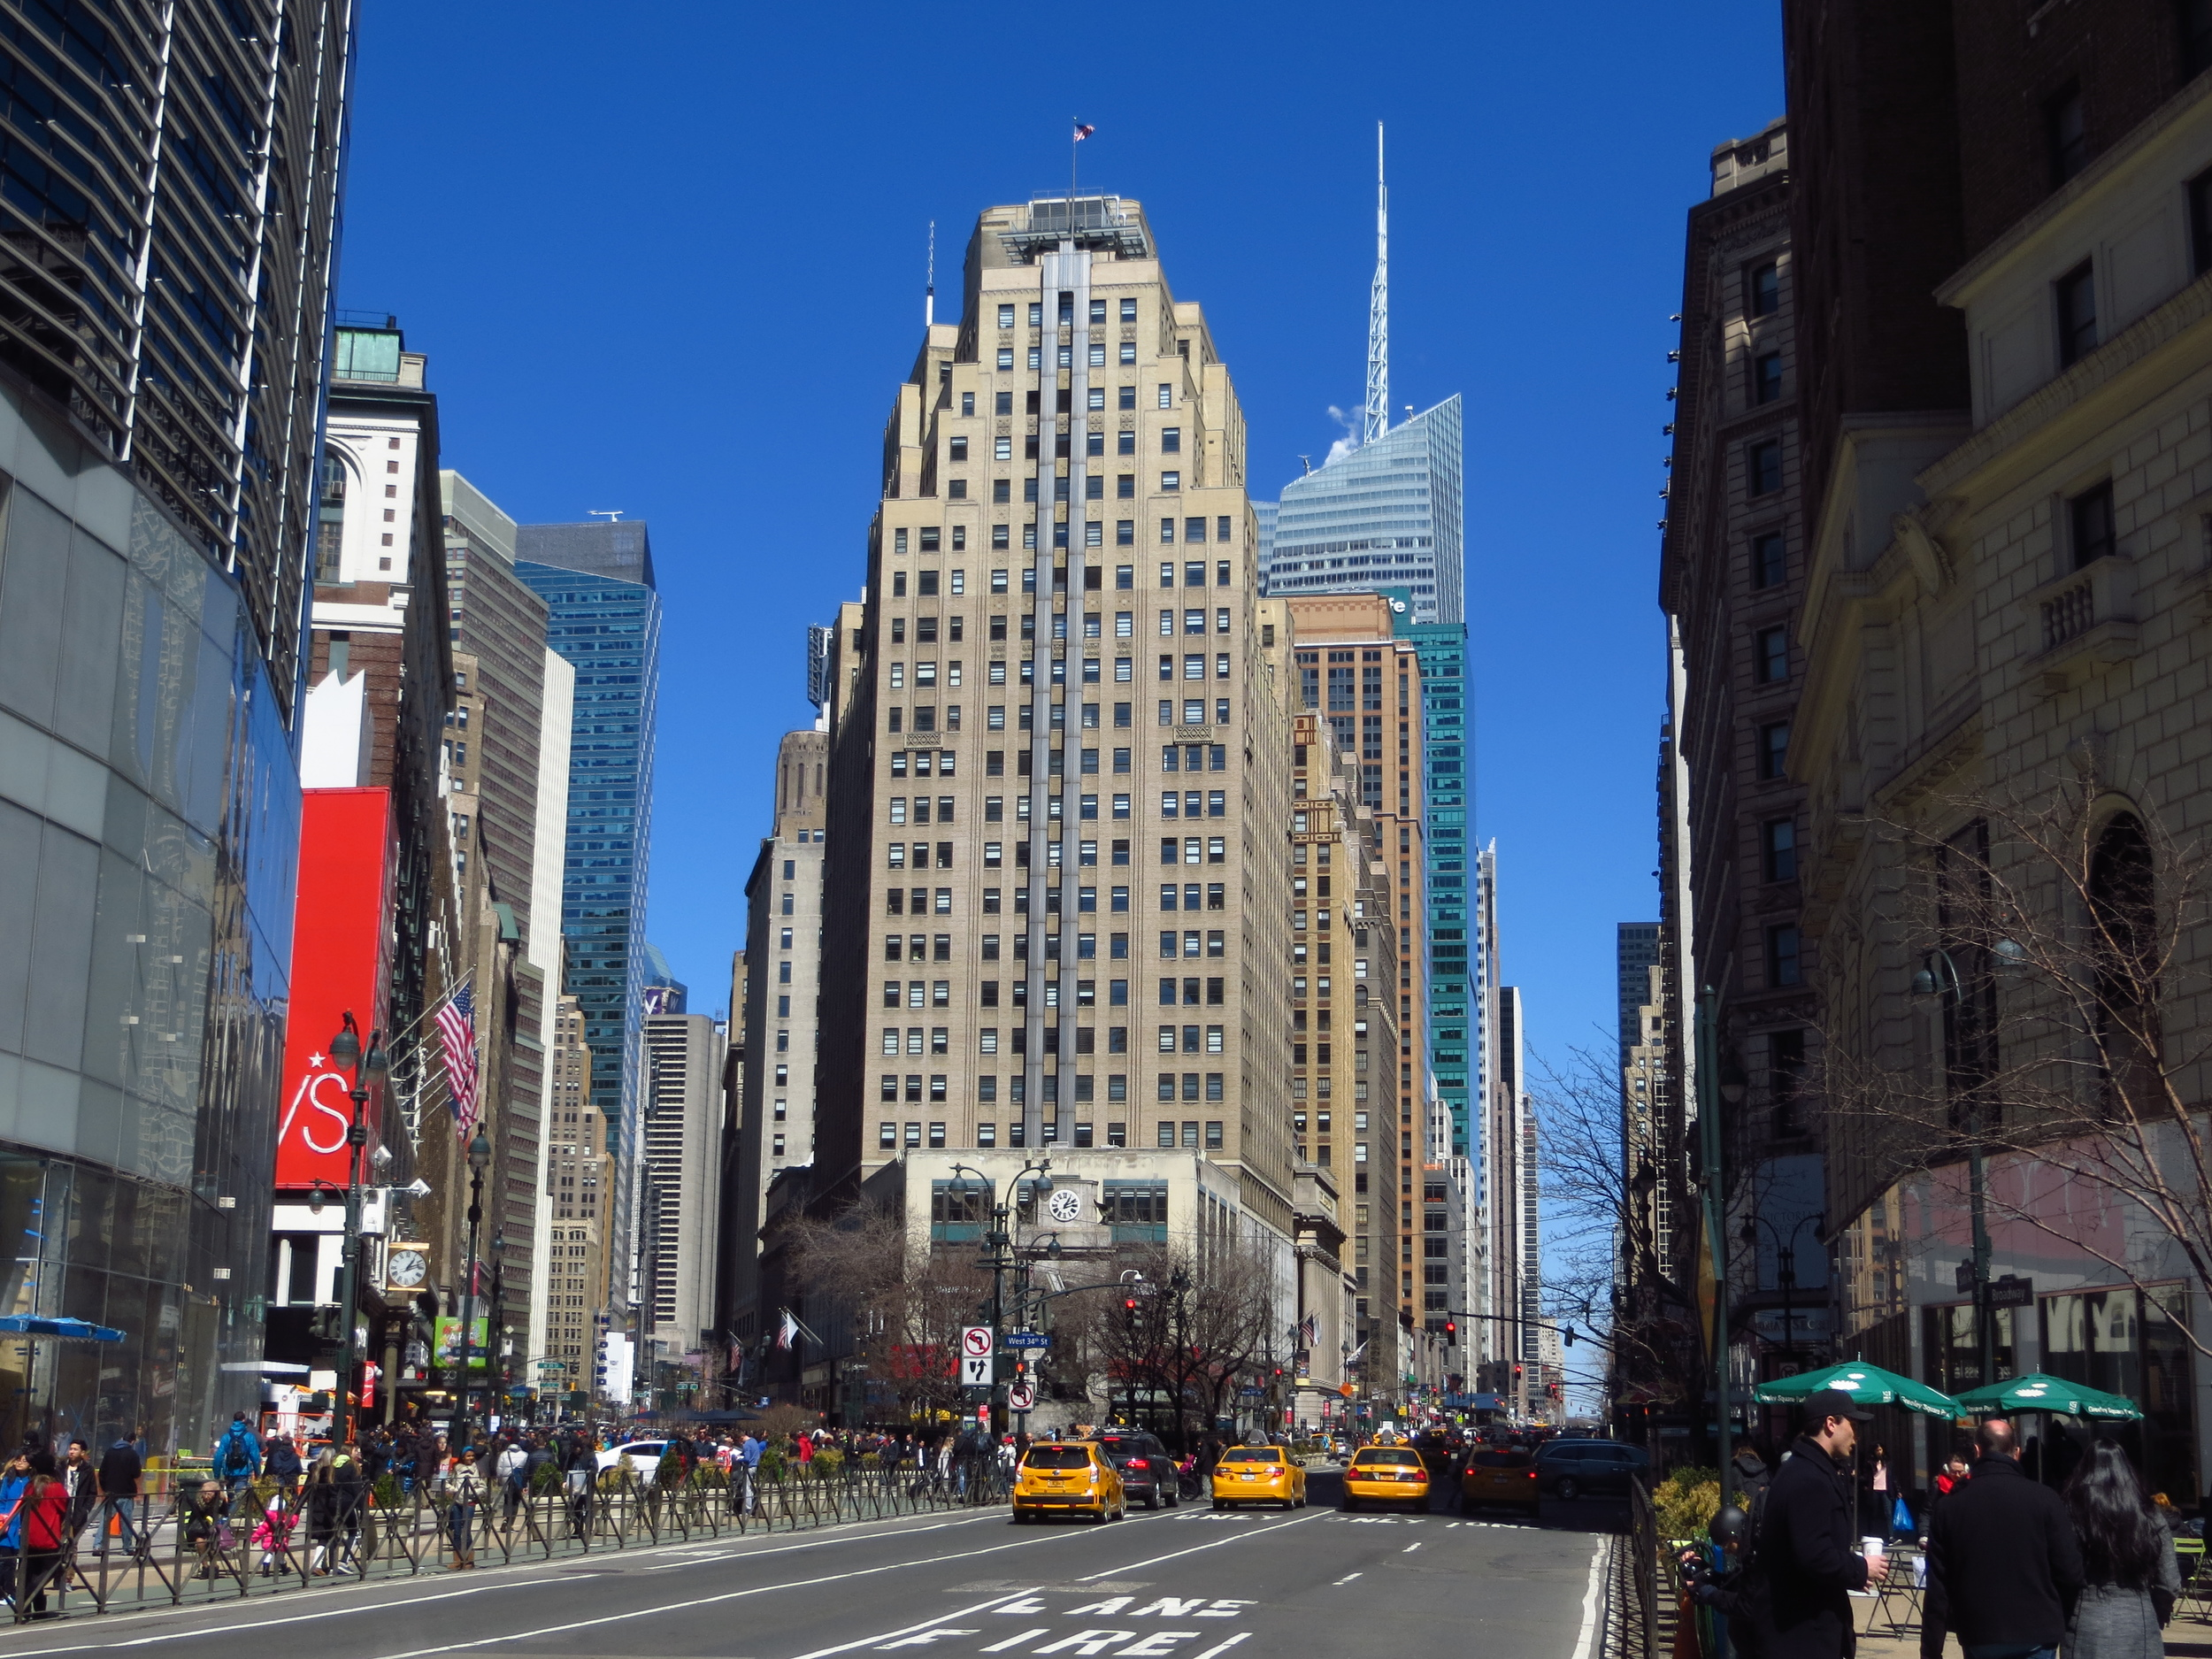 View up 6th Ave. from Herald Square